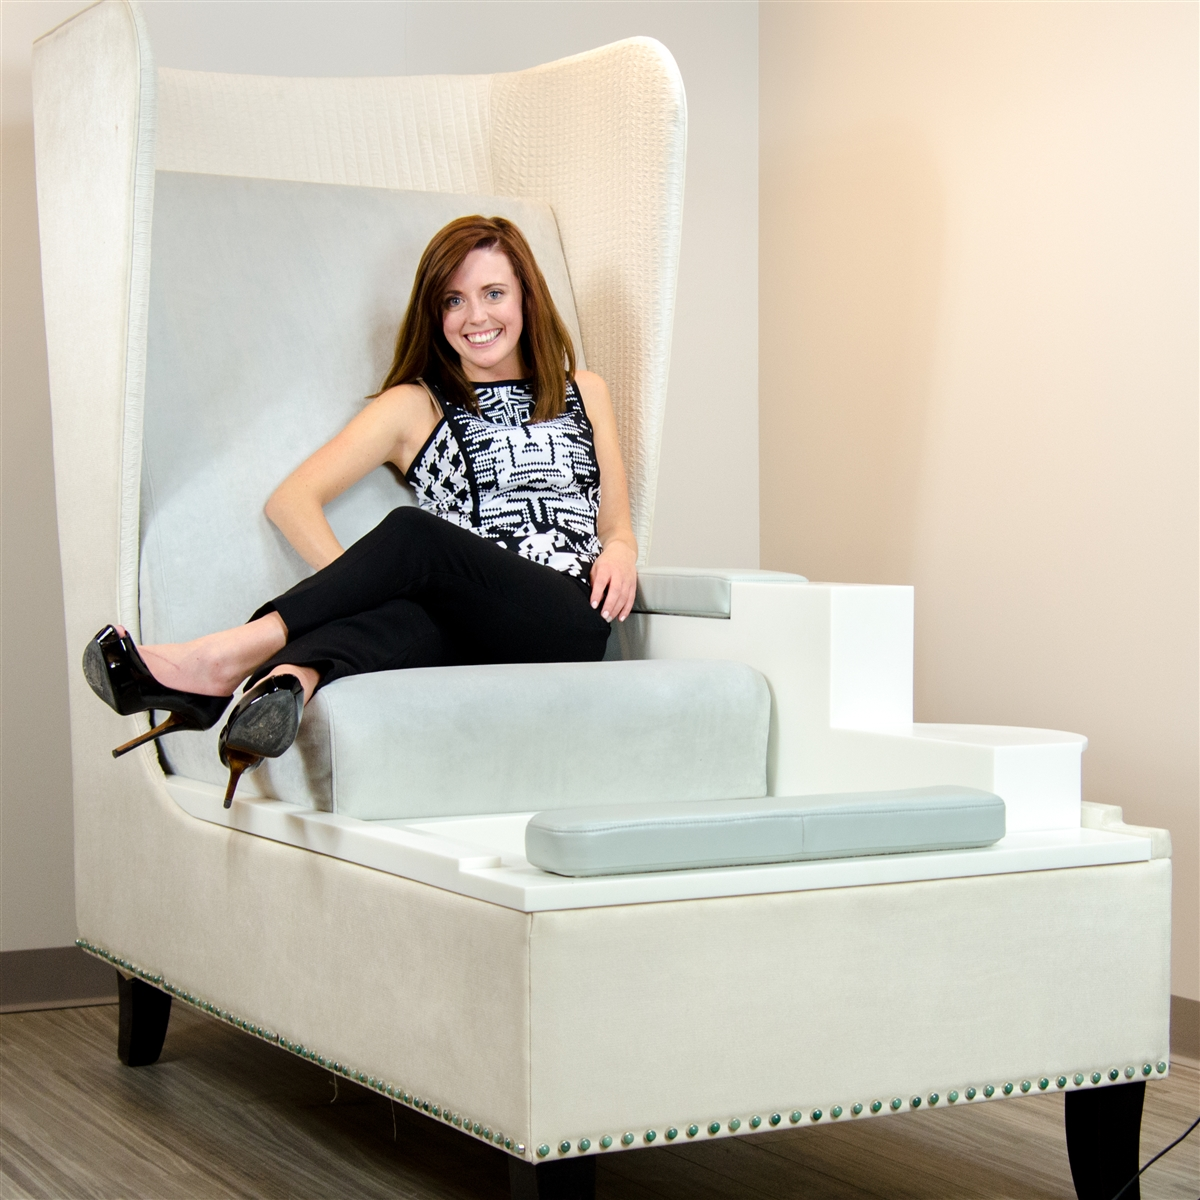 Blue Label Throne Amp Foot Spa Pedicure Chair For Nail Salon